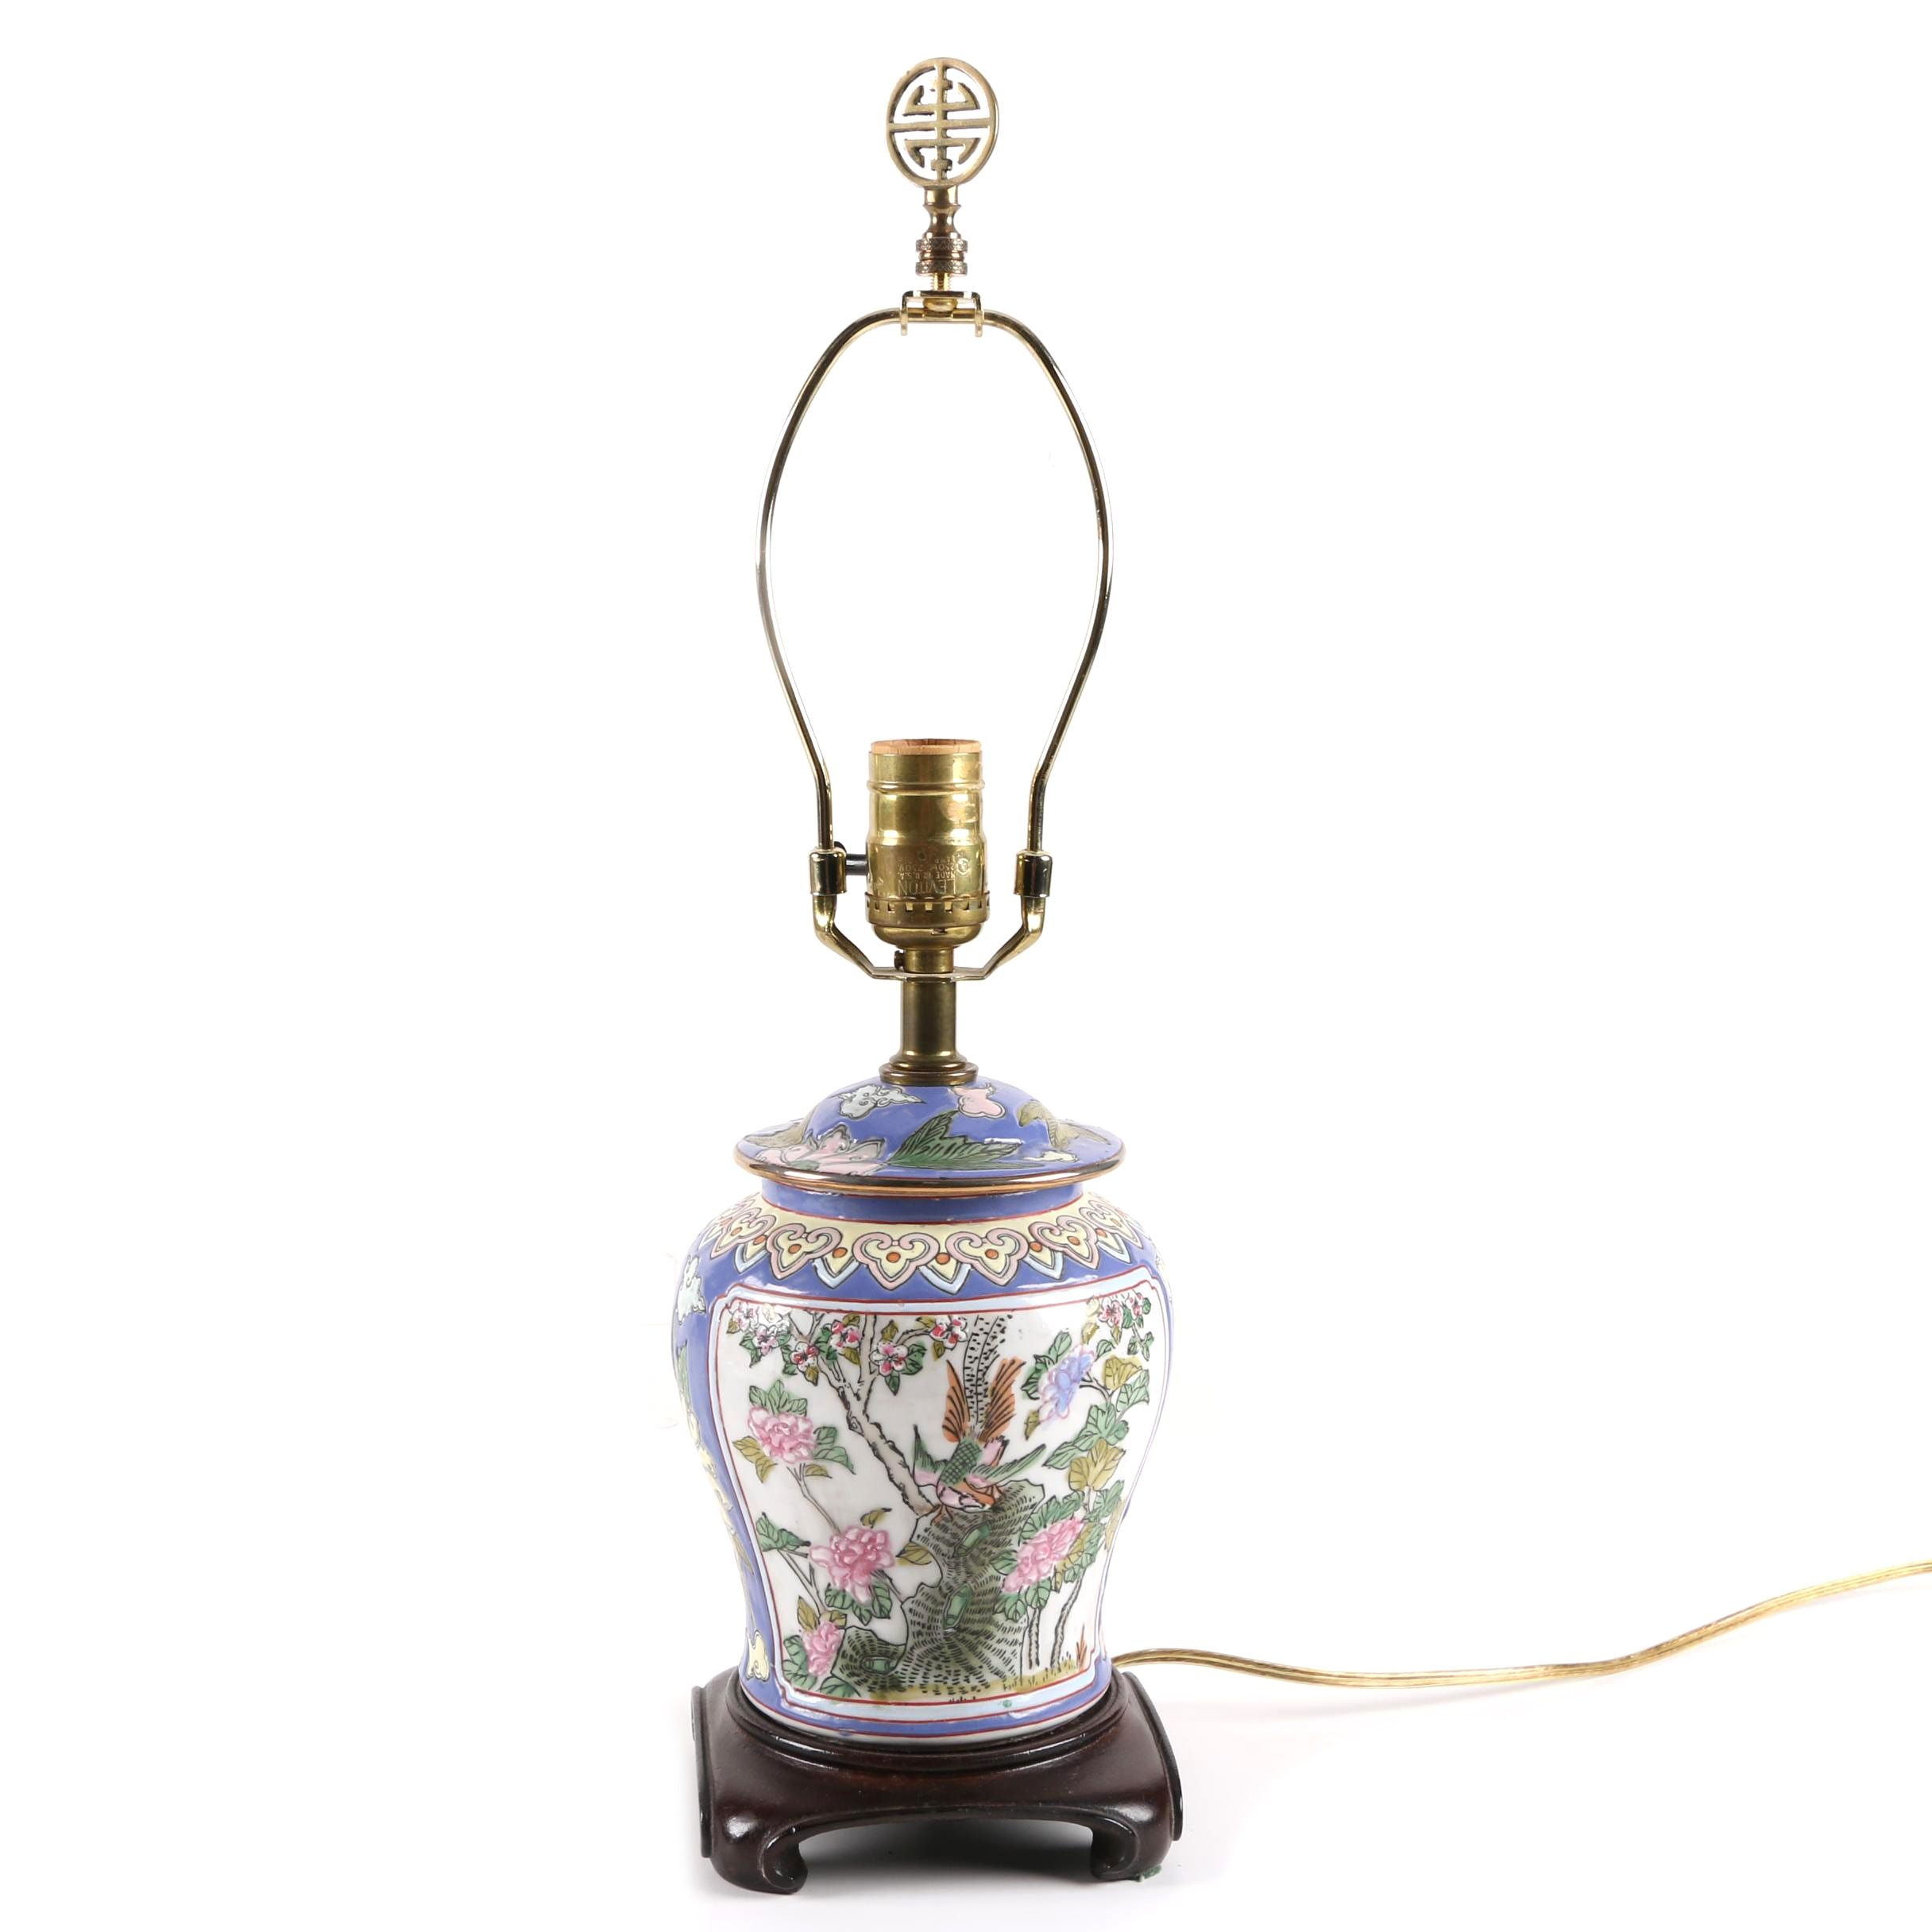 Hand-Painted Chinoiserie Porcelain Lamp